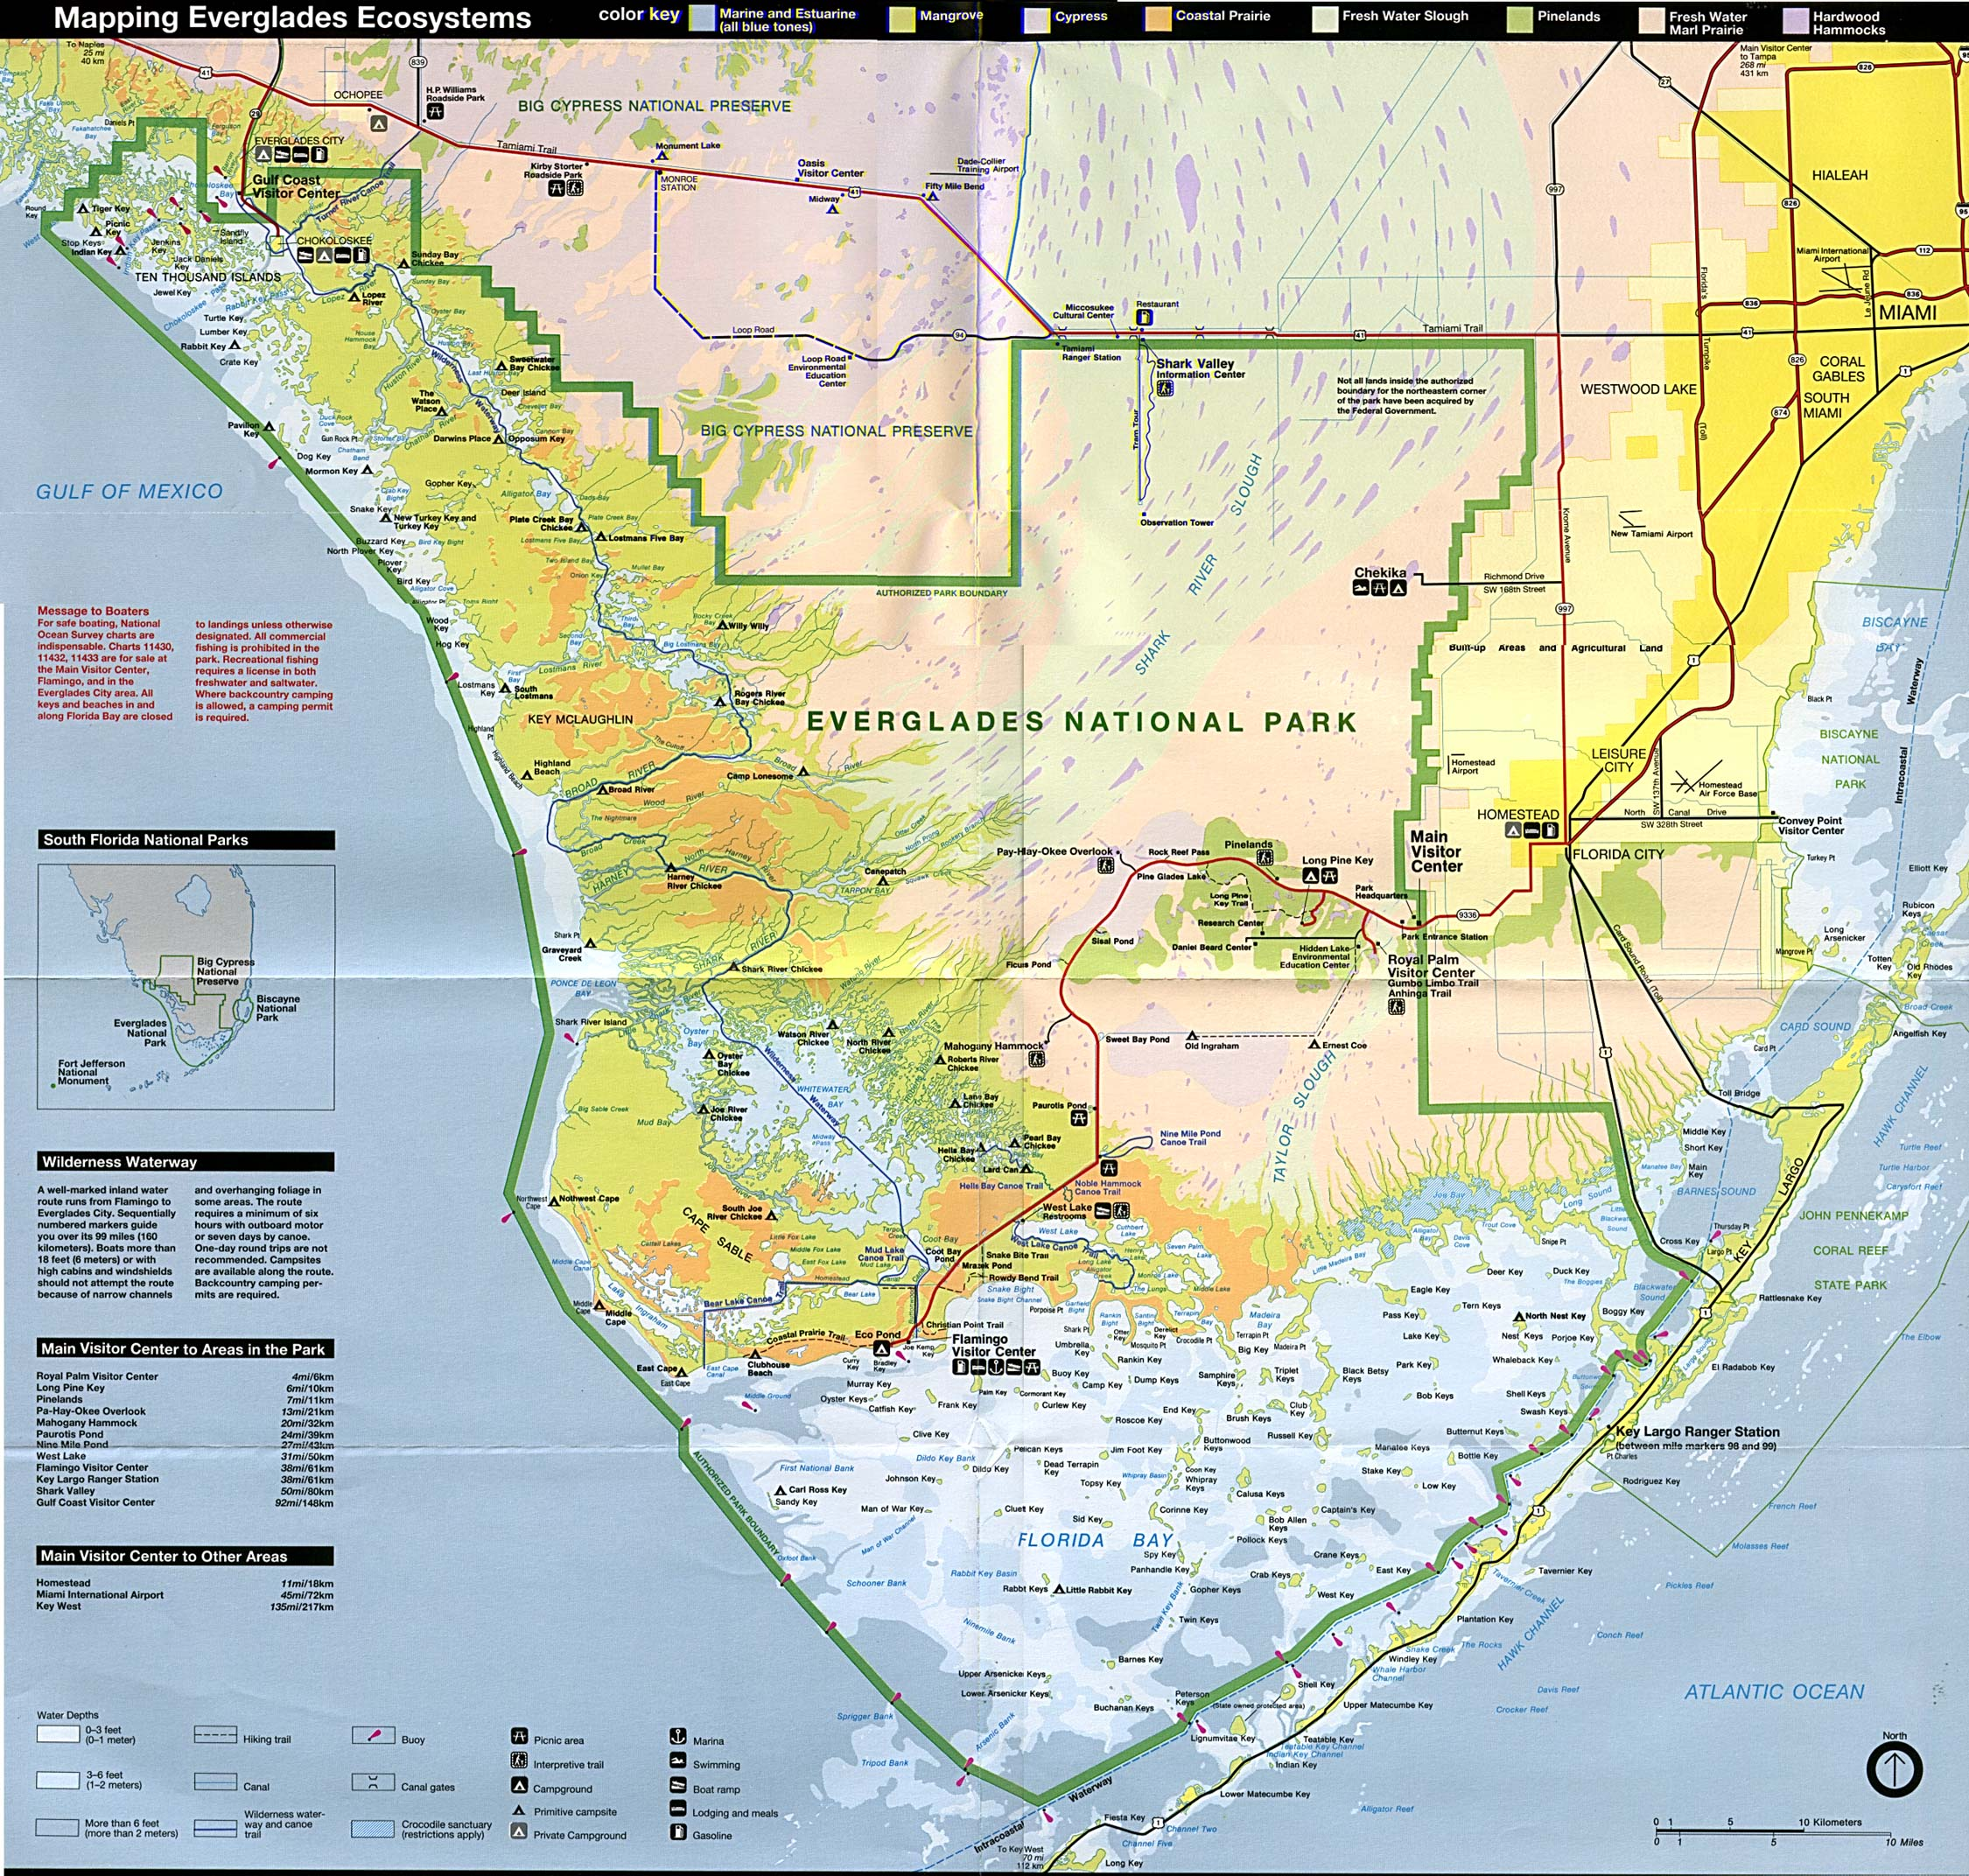 Florida Map Map Of Florida USA Detailed FL Map Florida County Map - Florida map miami area